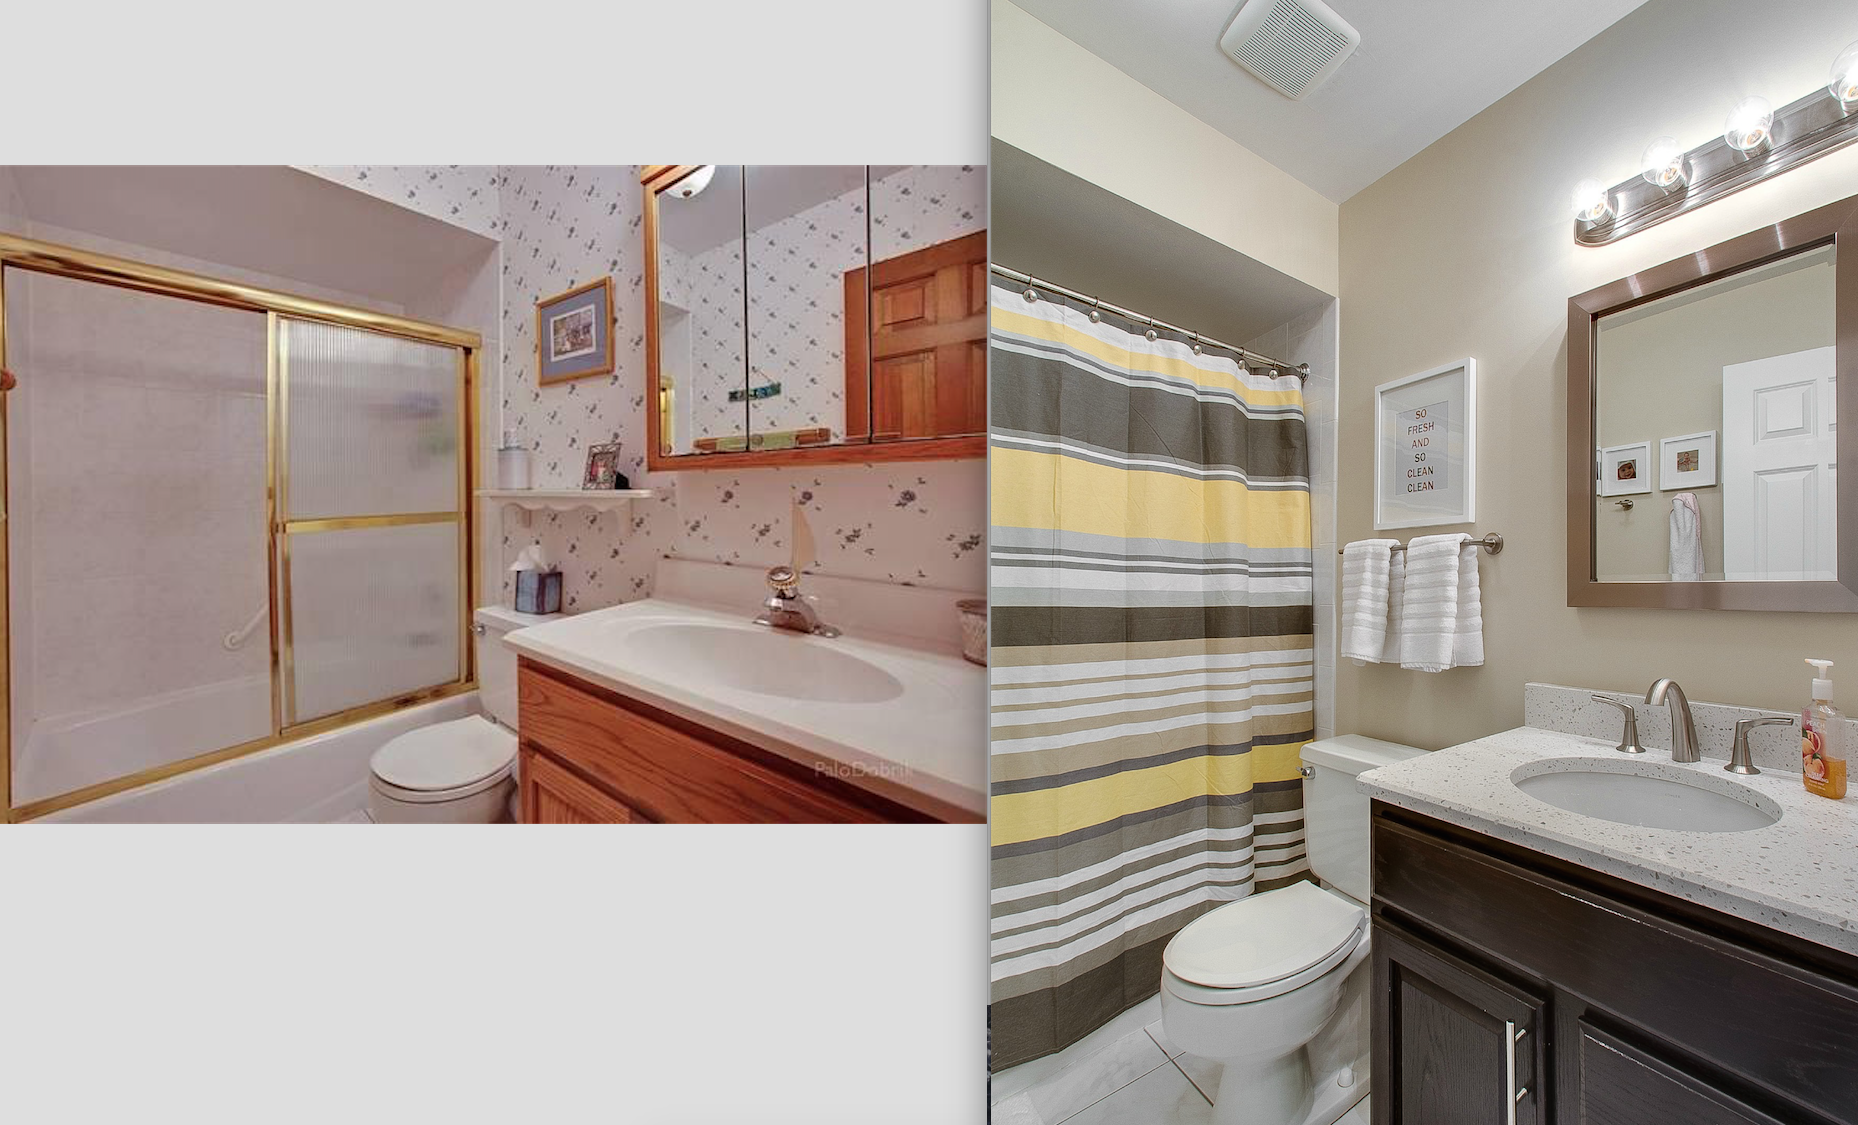 """I didn't have the foresight to take a great """"before"""" photo so this one is from the listing. The kid's bathroom refresh was completed for less than $400 (quartz countertop, faucet, stain, mirror, light fixture, shower curtain, and bathroom hardware) and a whole lot of elbow grease."""